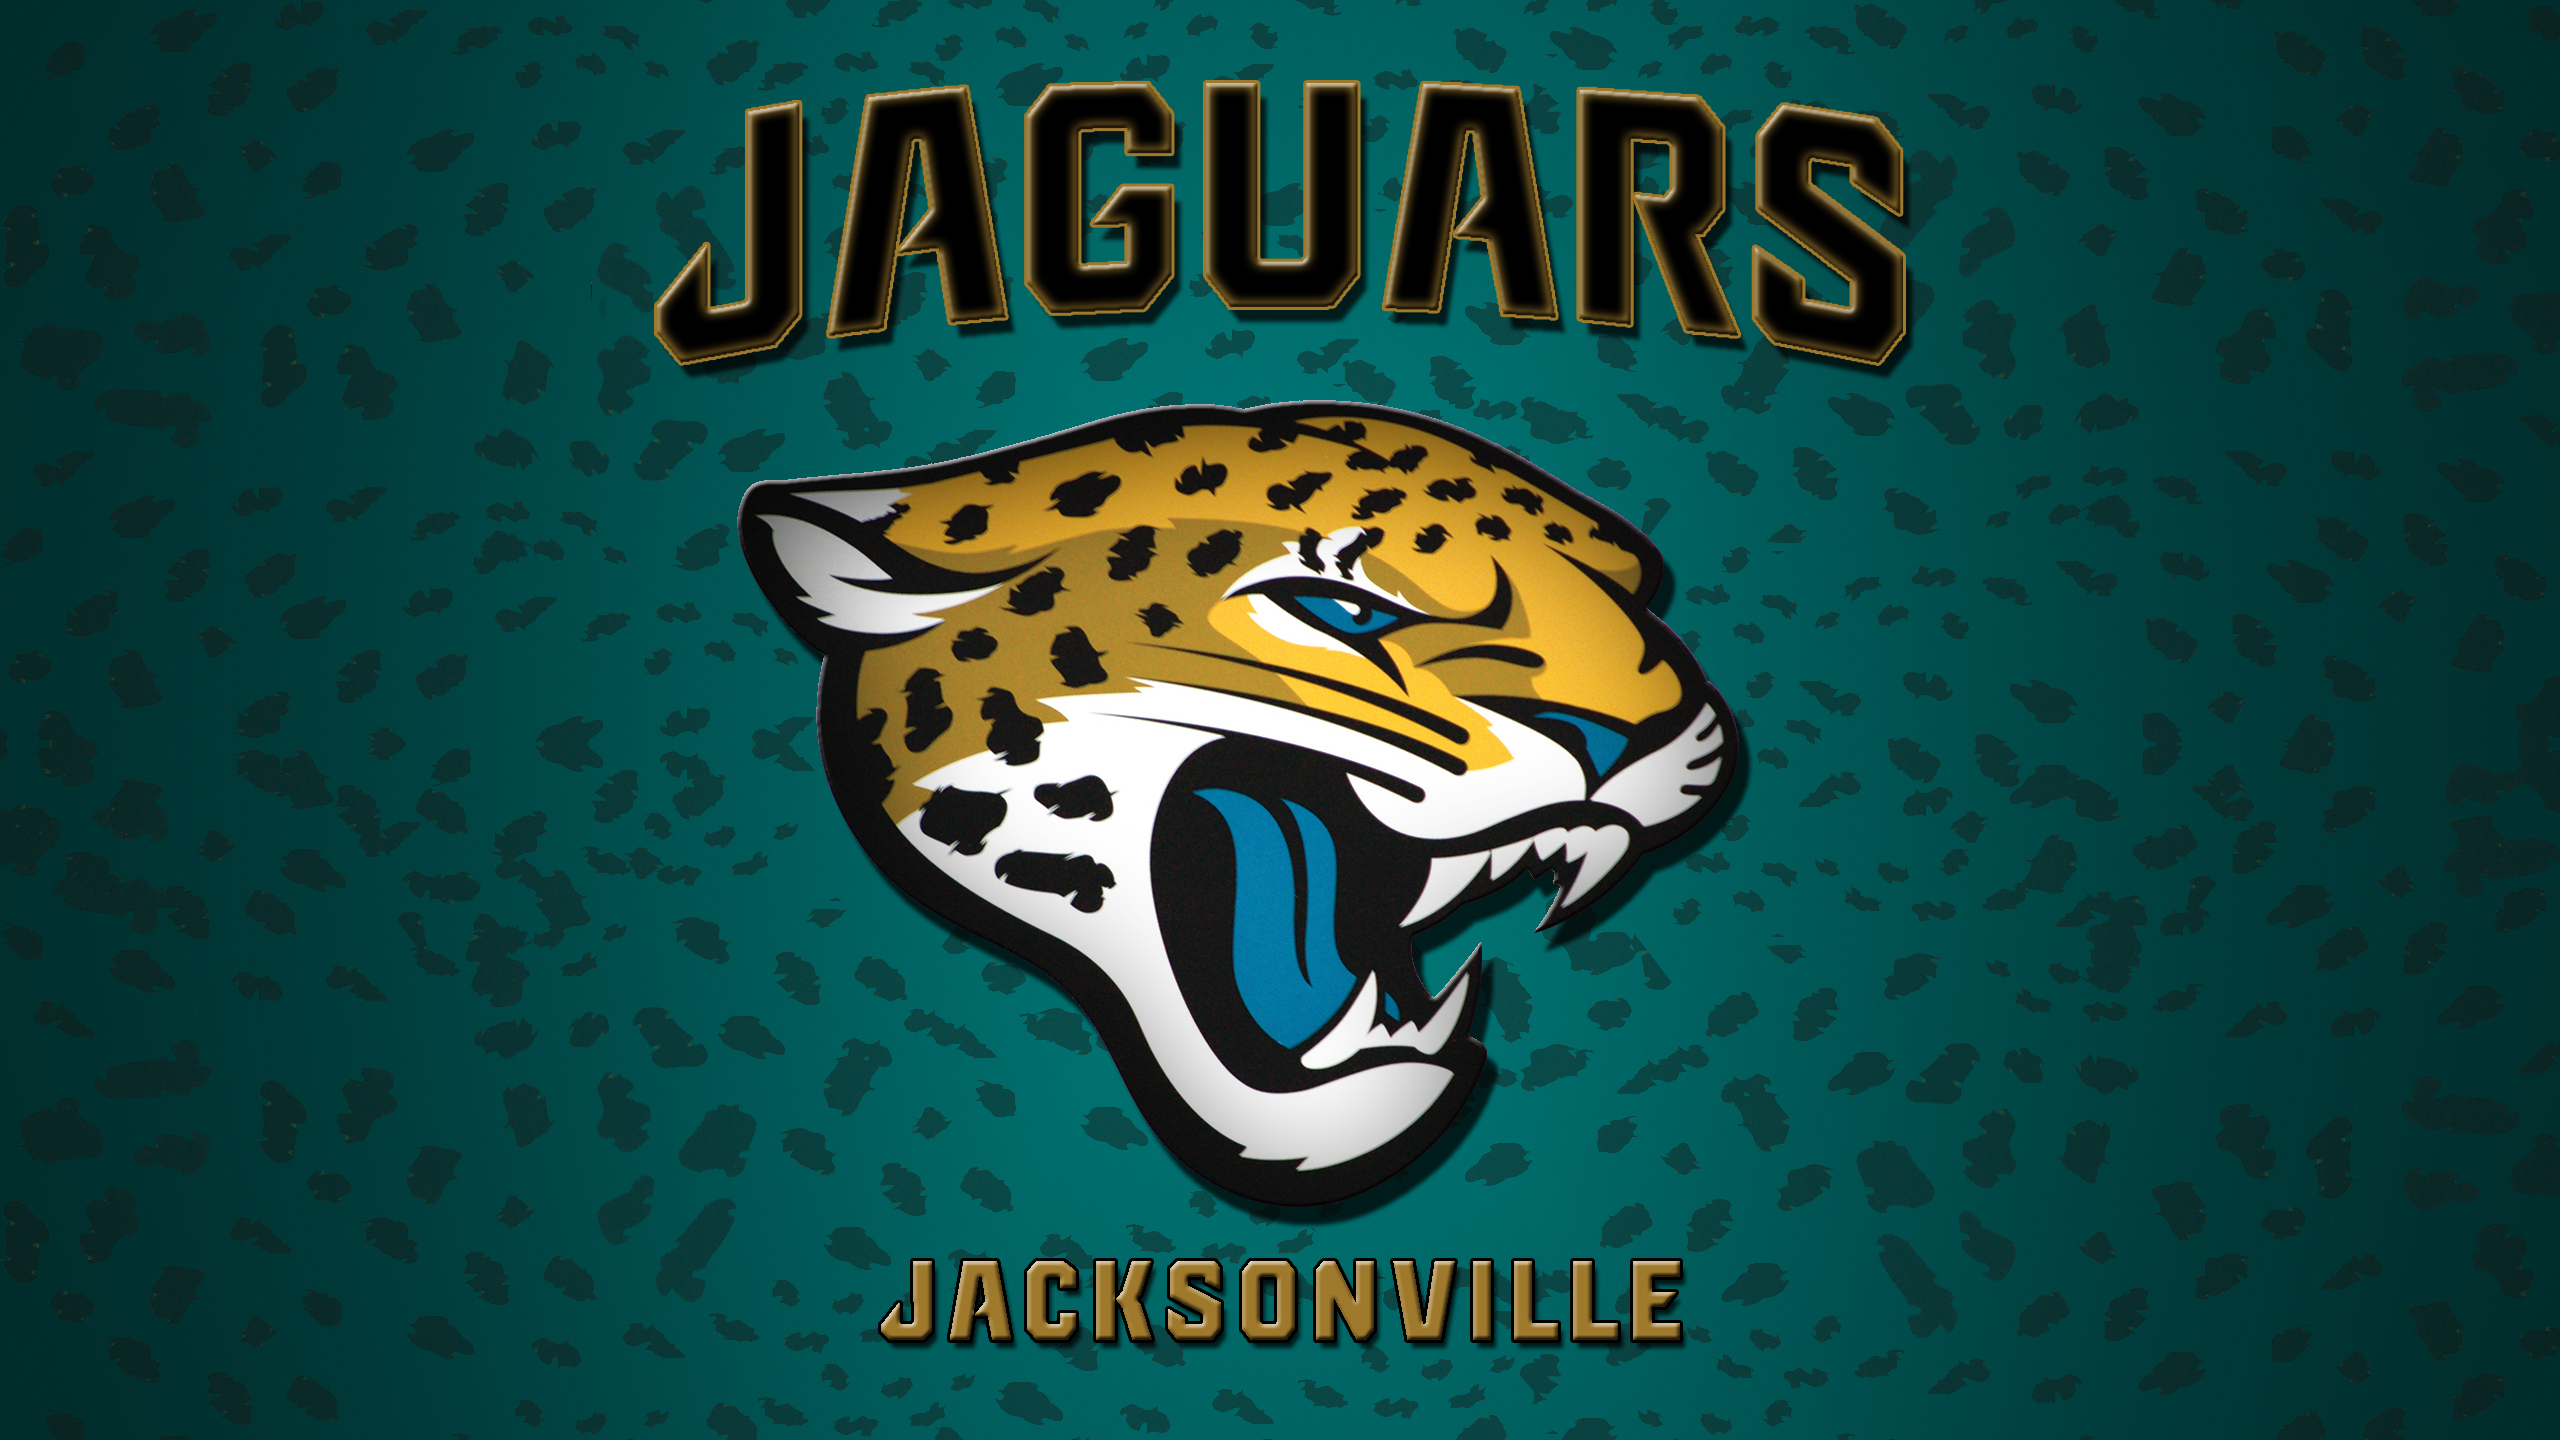 jacksonville jaguars by beaware8 fan art wallpaper other 2014 2015 2560x1440